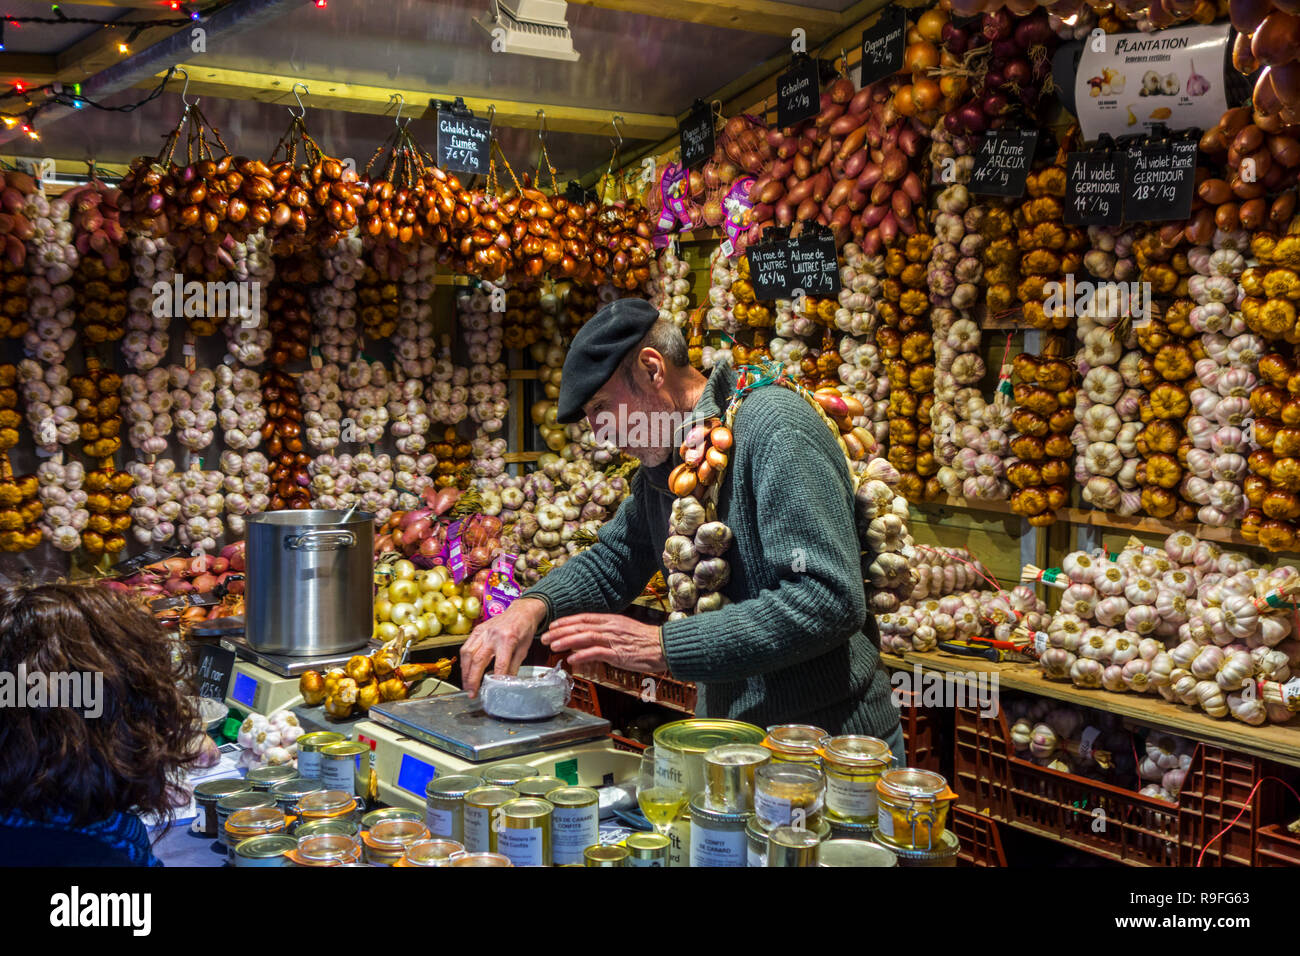 Frenchman / street vendor in booth selling garlic and French food specialities / regional products at Christmas market in winter - Stock Image